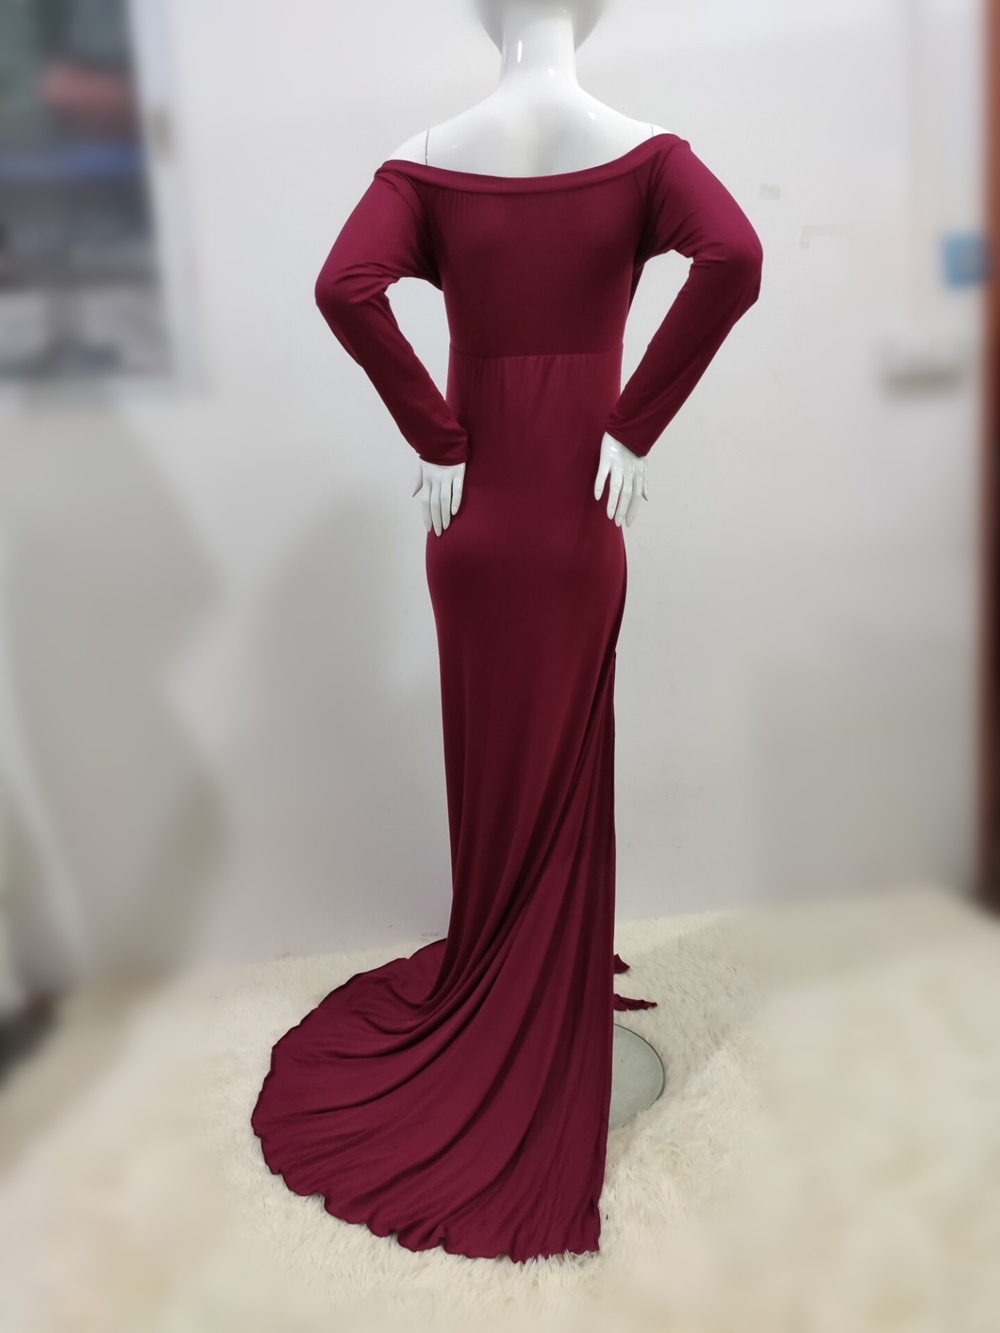 Sexy Shoulderless Maternity Dresses For Photo Shoot Maxi Gown Split Side Women Pregnant Photography Props Long Pregnancy Dress (23)